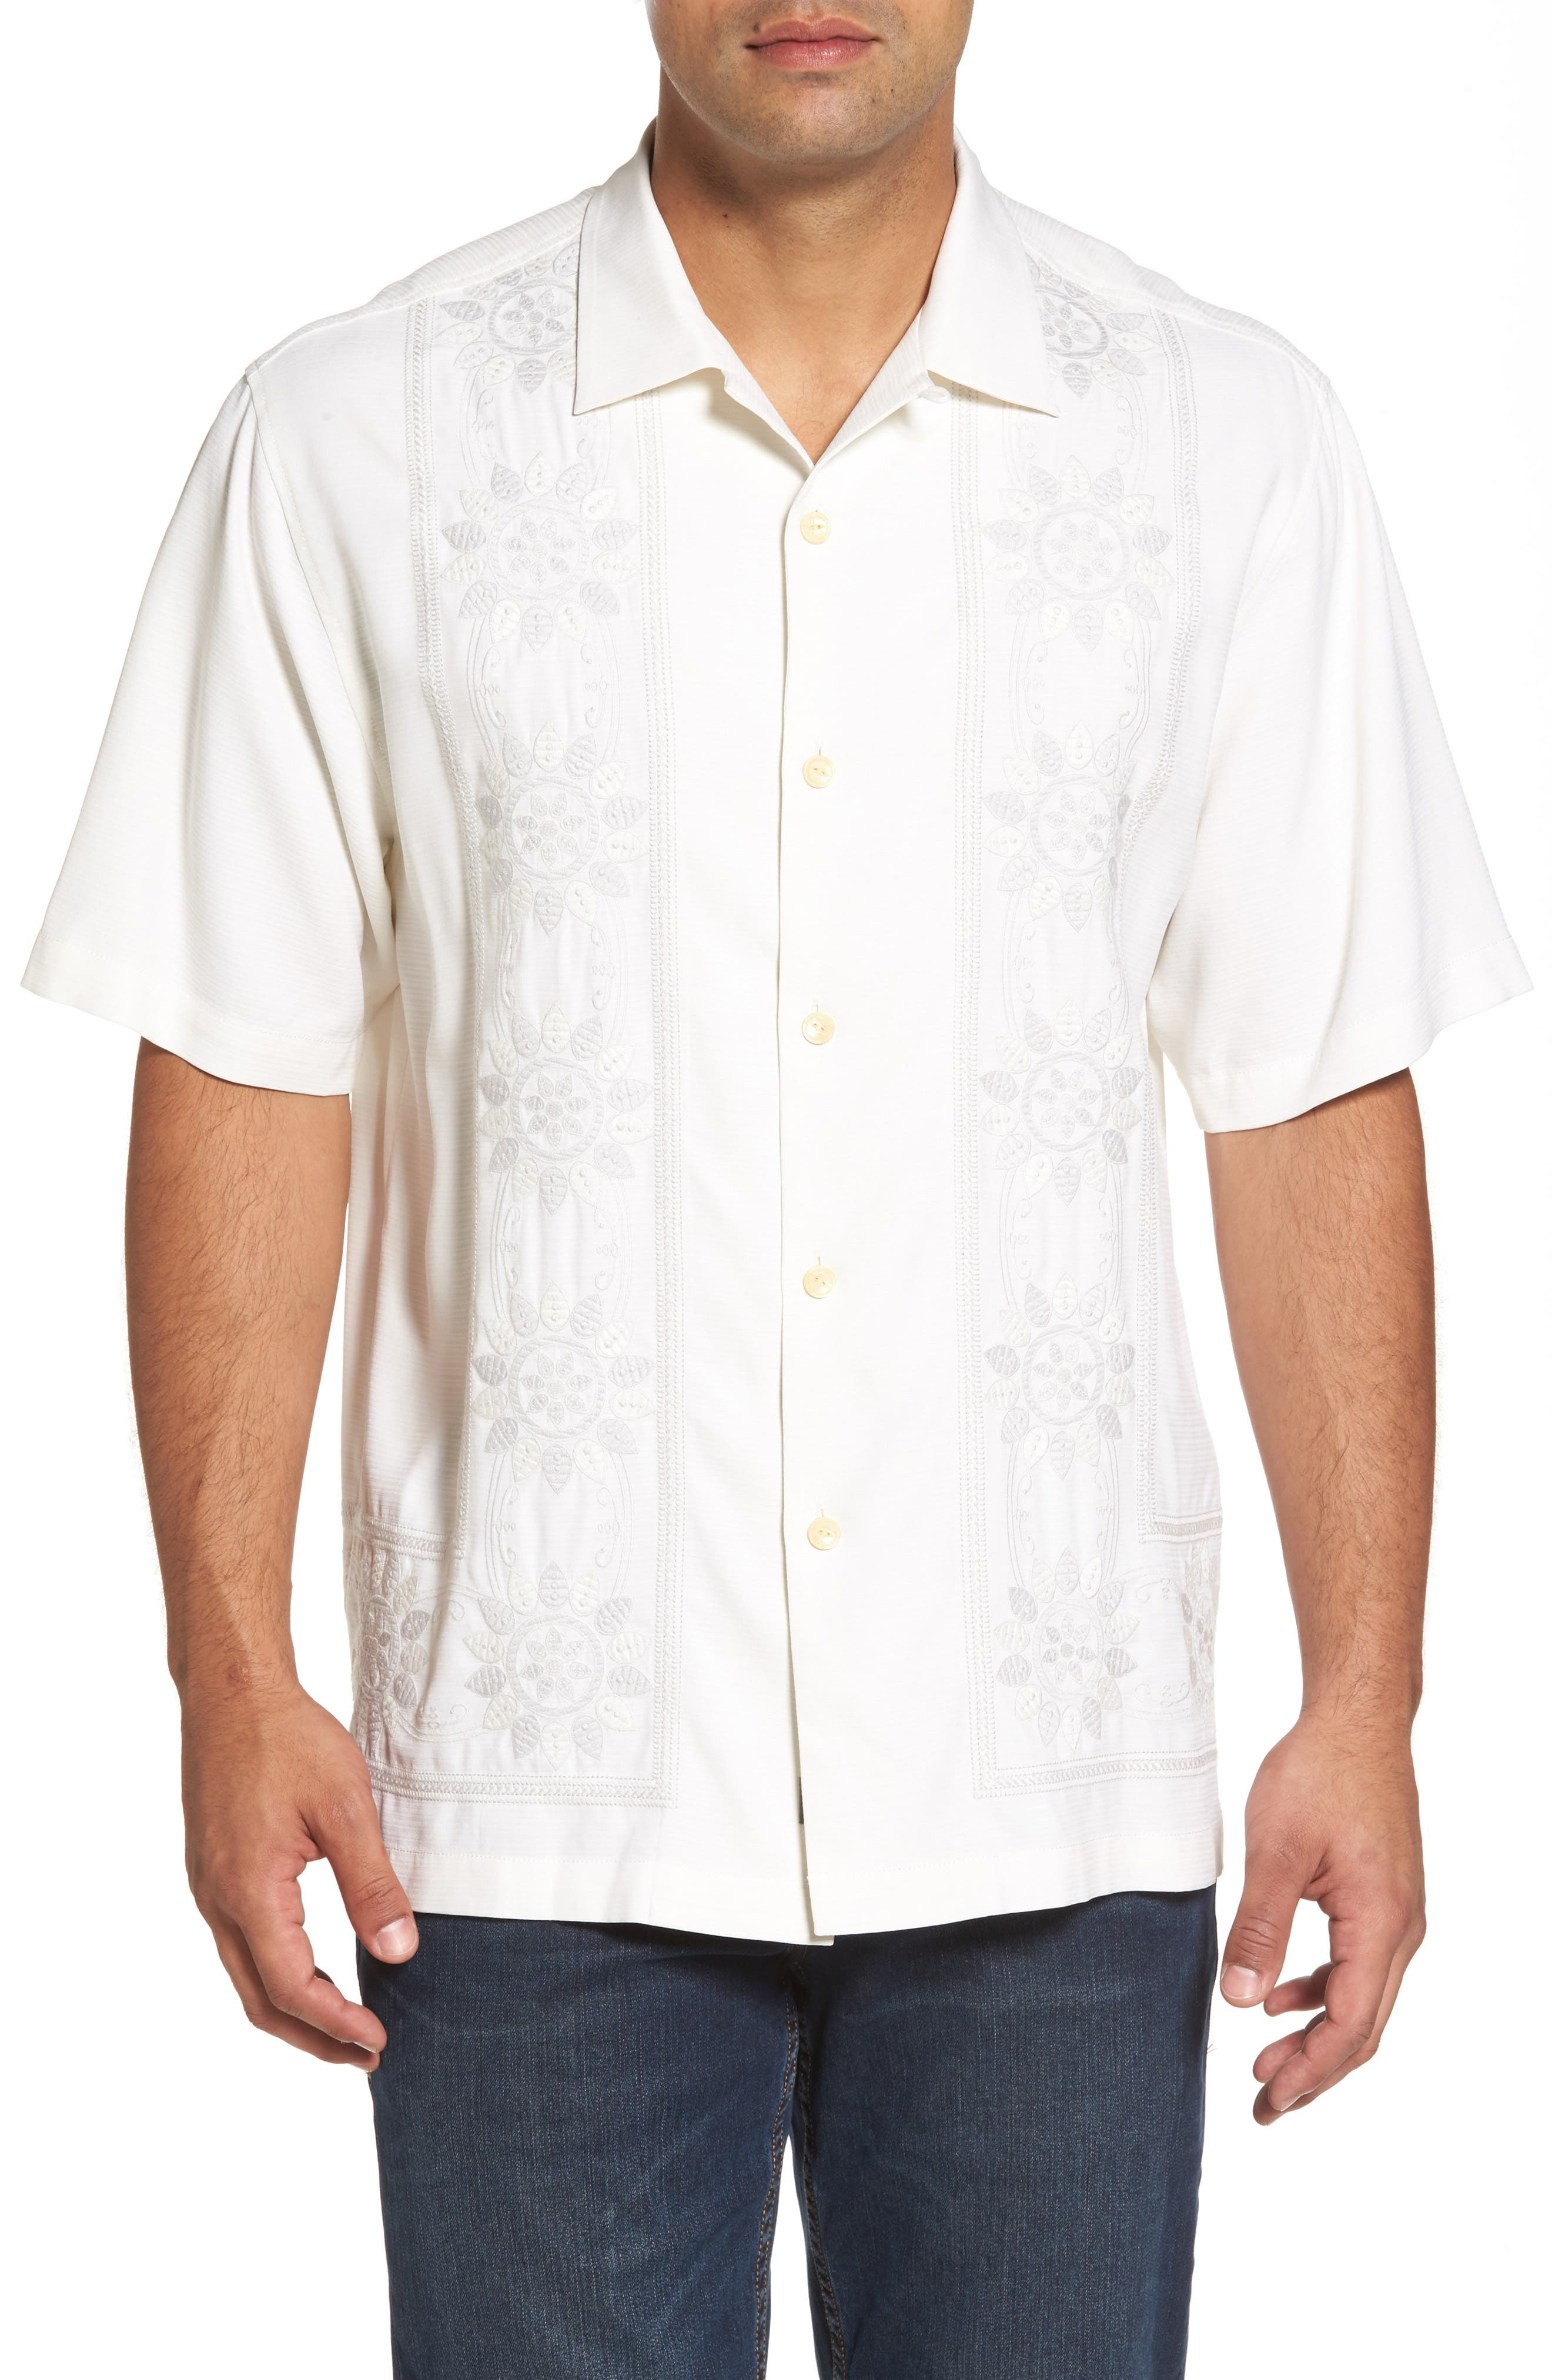 Alternate Image 1 Selected - Tommy Bahama Tangier Tiles Embroidered Silk Woven Shirt